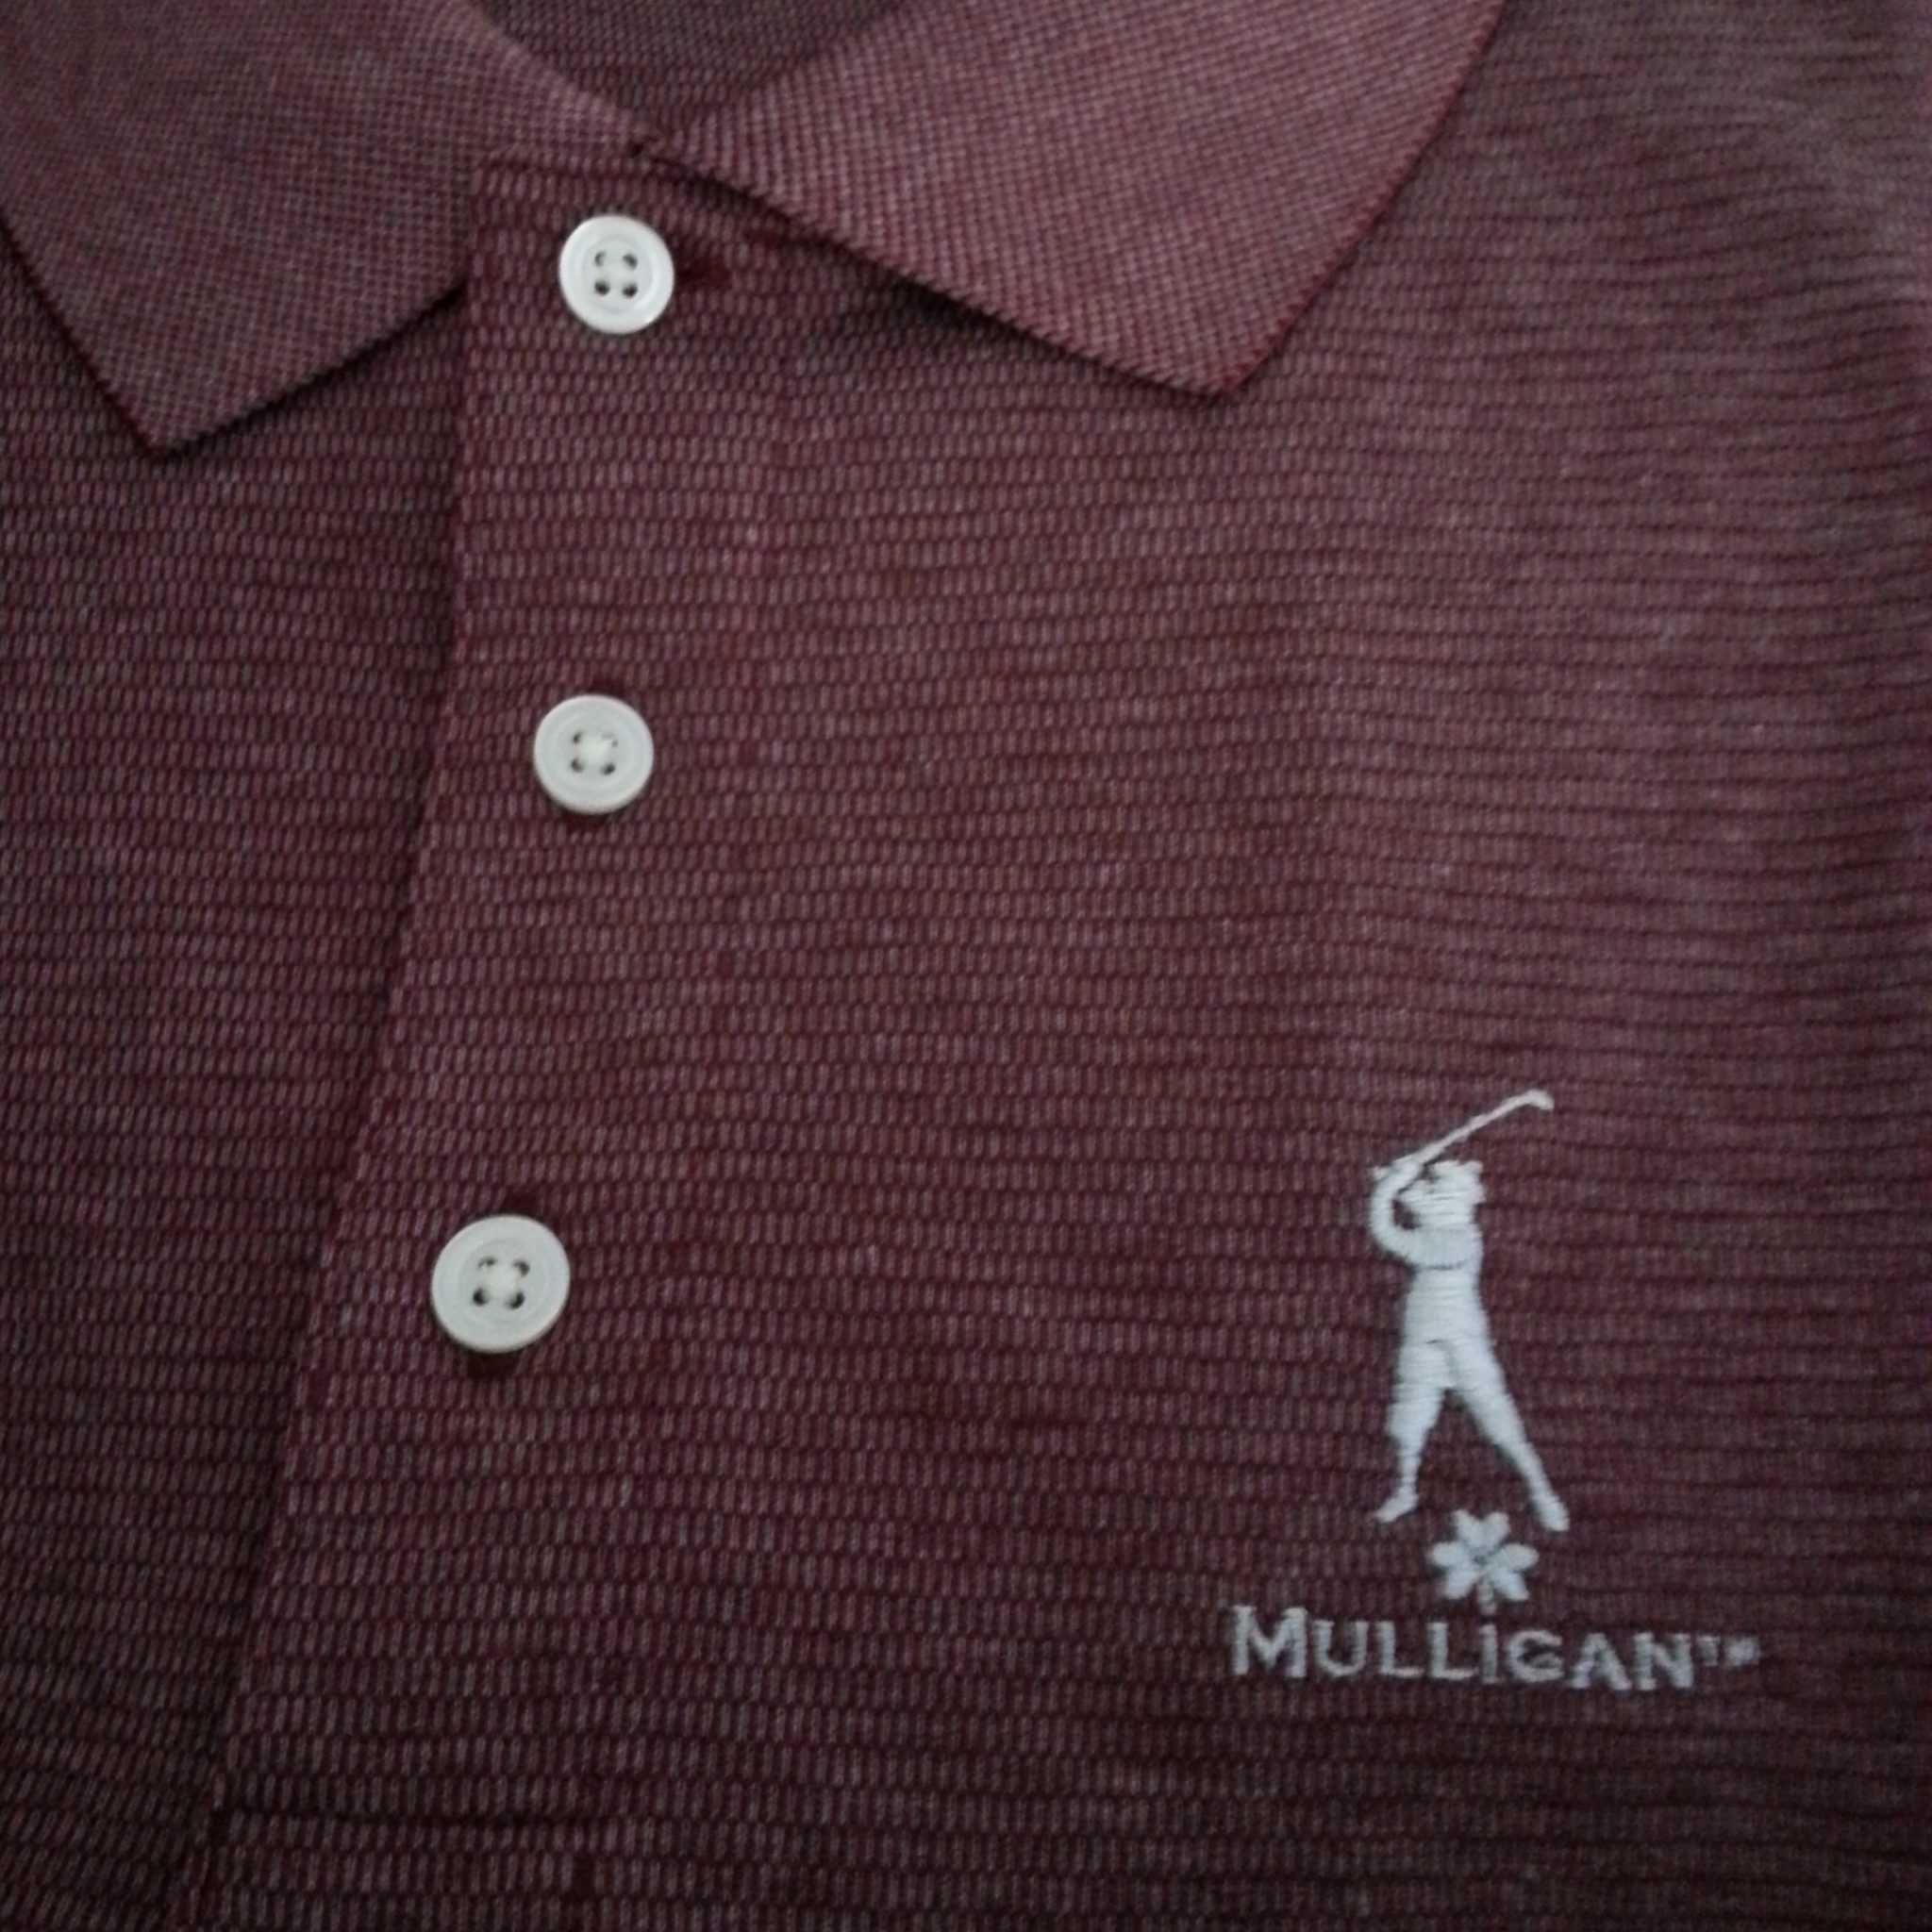 Mulligan Gear's Top Quality Water Shed Polo Shirts